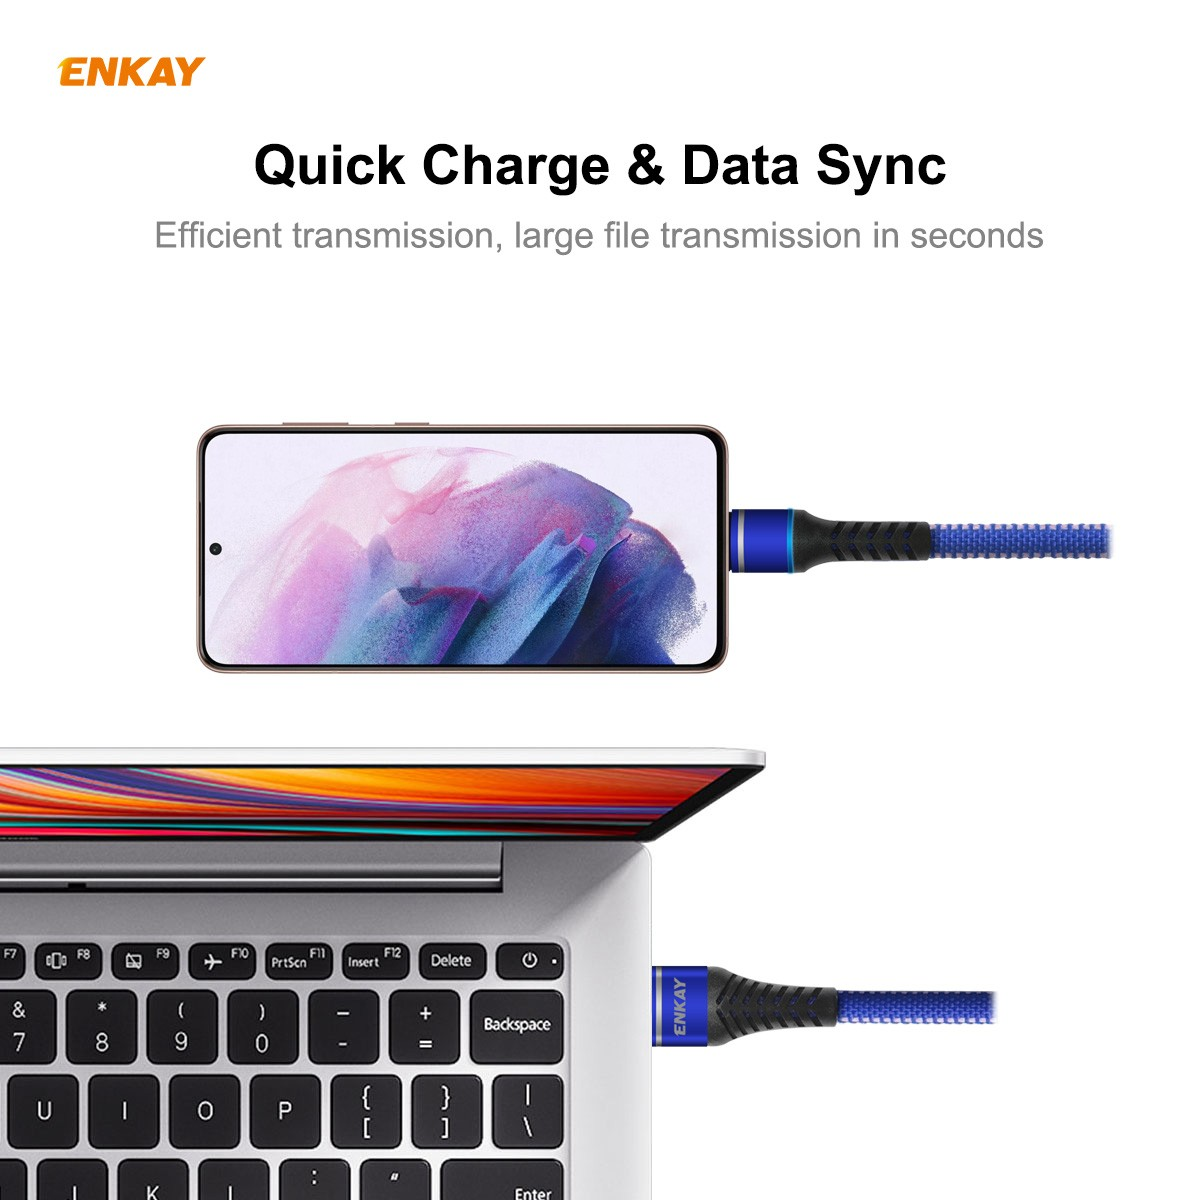 ENKAY ENK-CB107 USB 3.0 to Type-C Data Cable 1M - Black